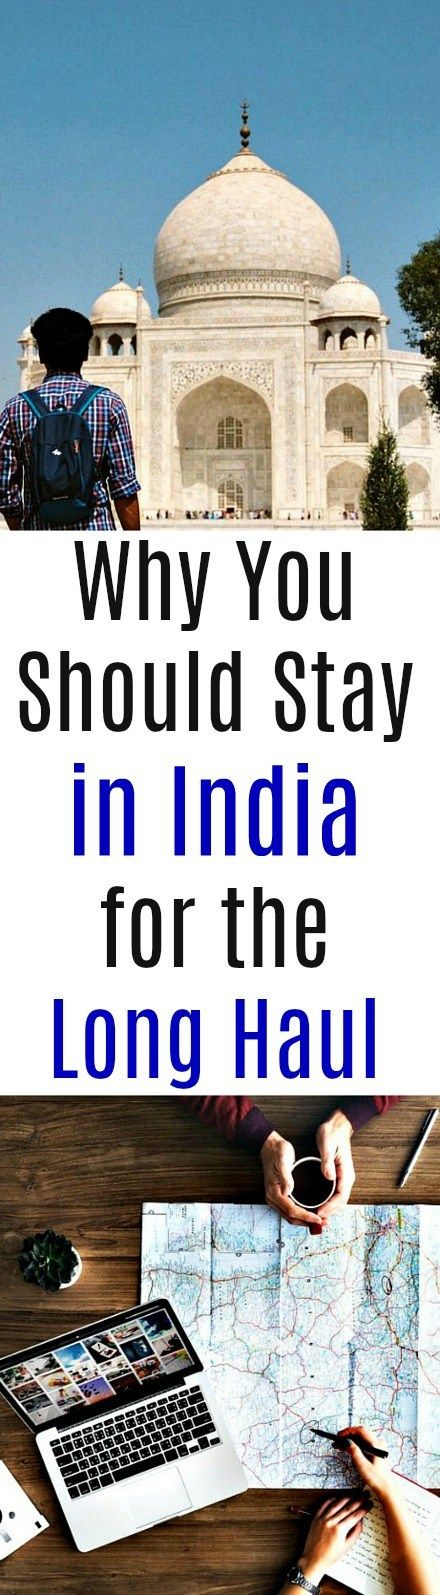 Why You Should Stay in India for the Long Haul